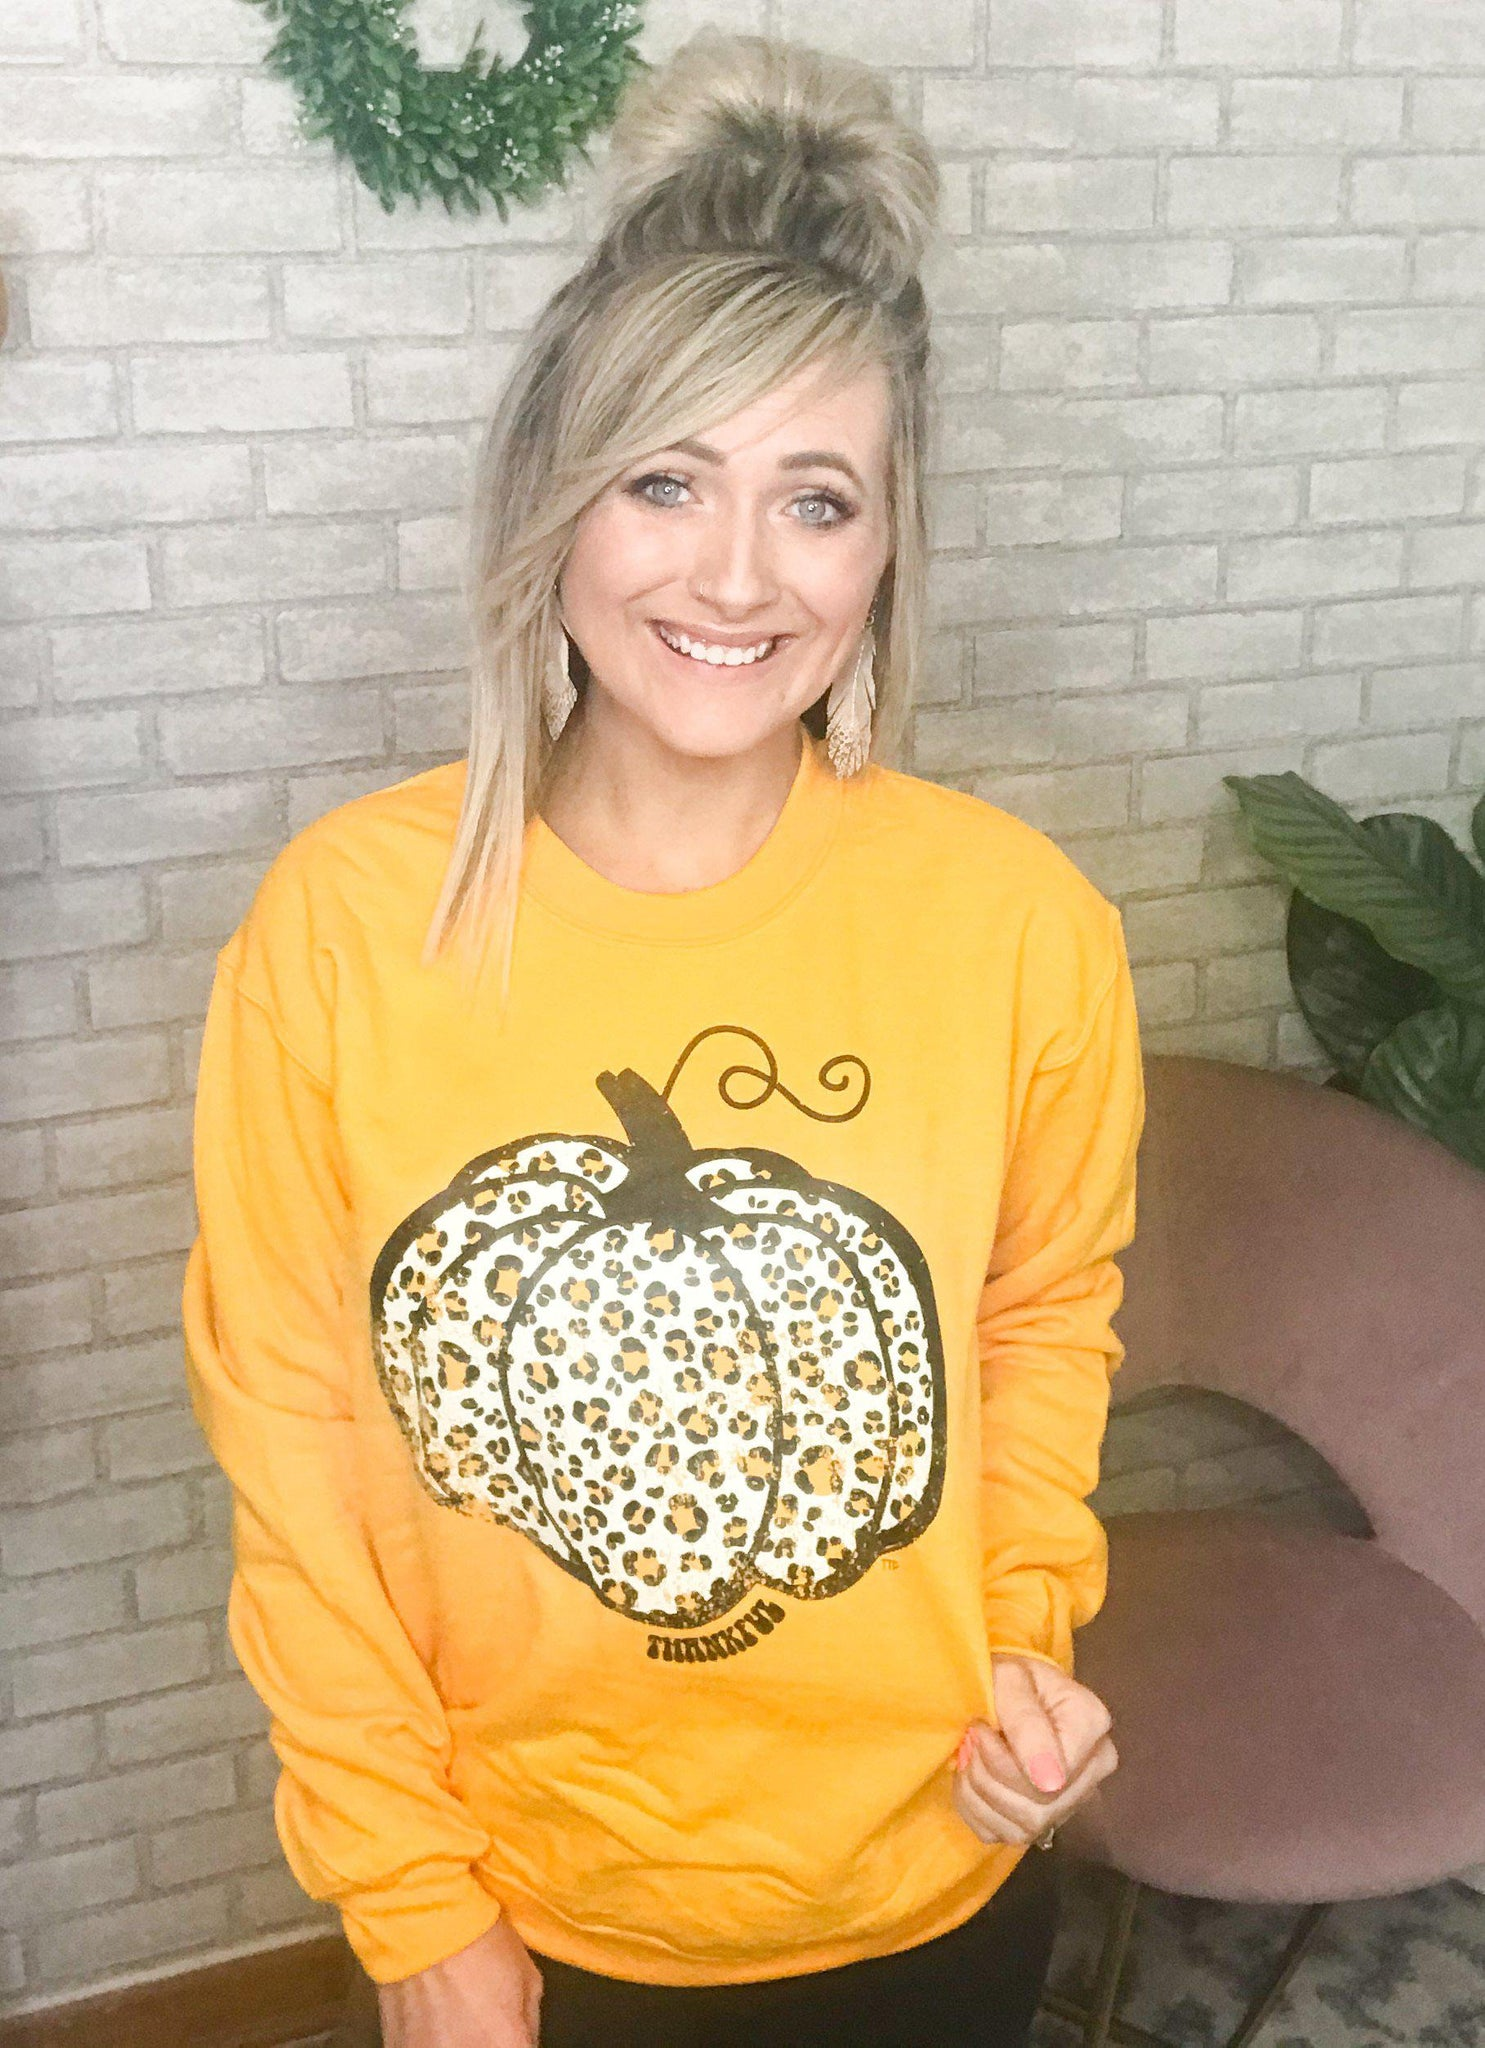 Mustard Pumpkin Sweater - This & That Boutique Shop